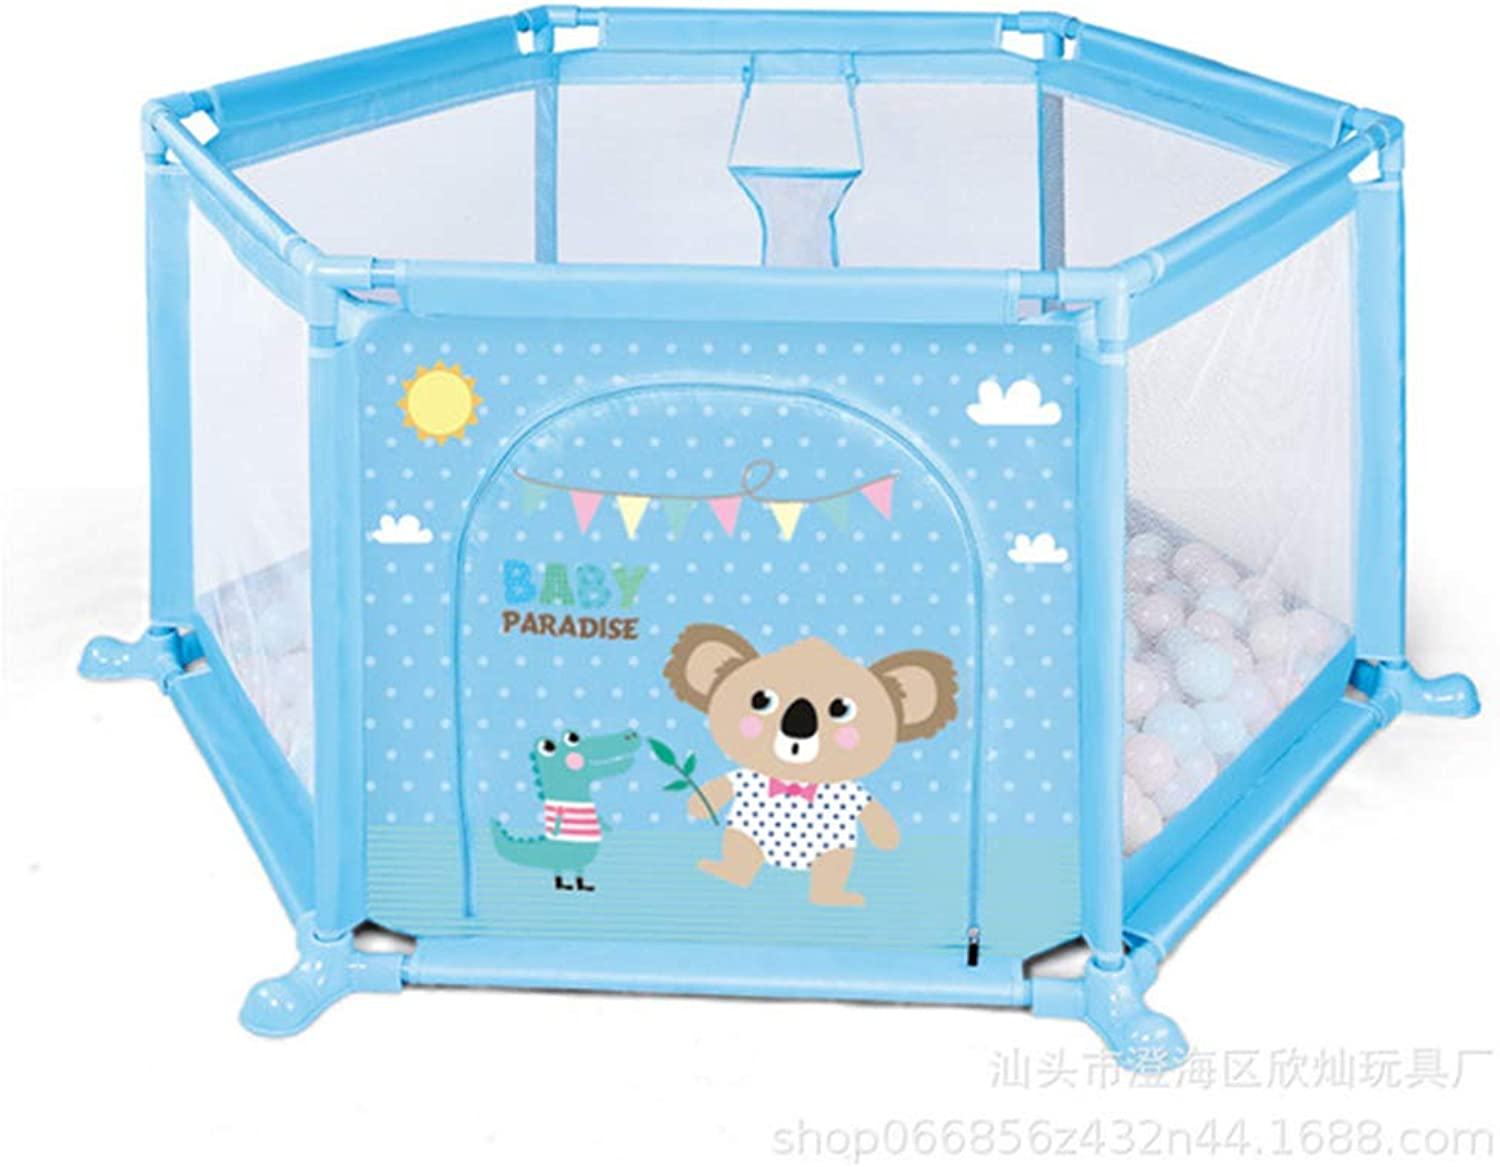 Newborn Hexagonal Fence Predective Infant Playpen Deluxe Household Playyard Toddler Activity Center Safe Crawling Washable Portable